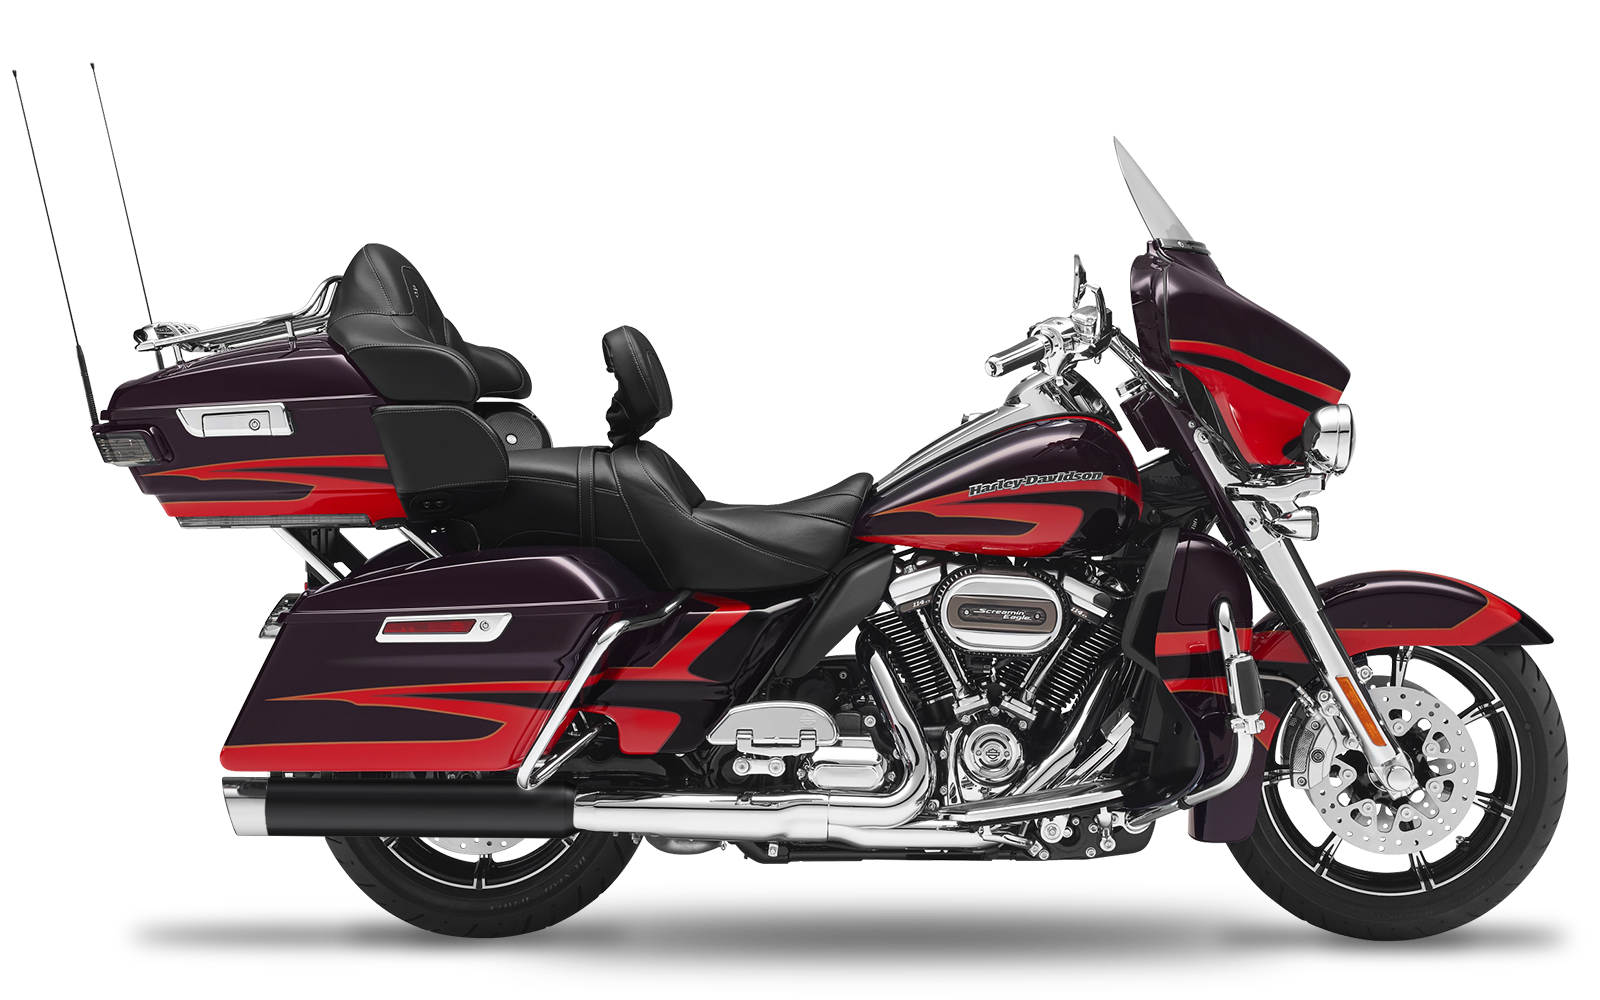 Touring - Road Glide Limited - ME114 - 2021 - Endtöpfe